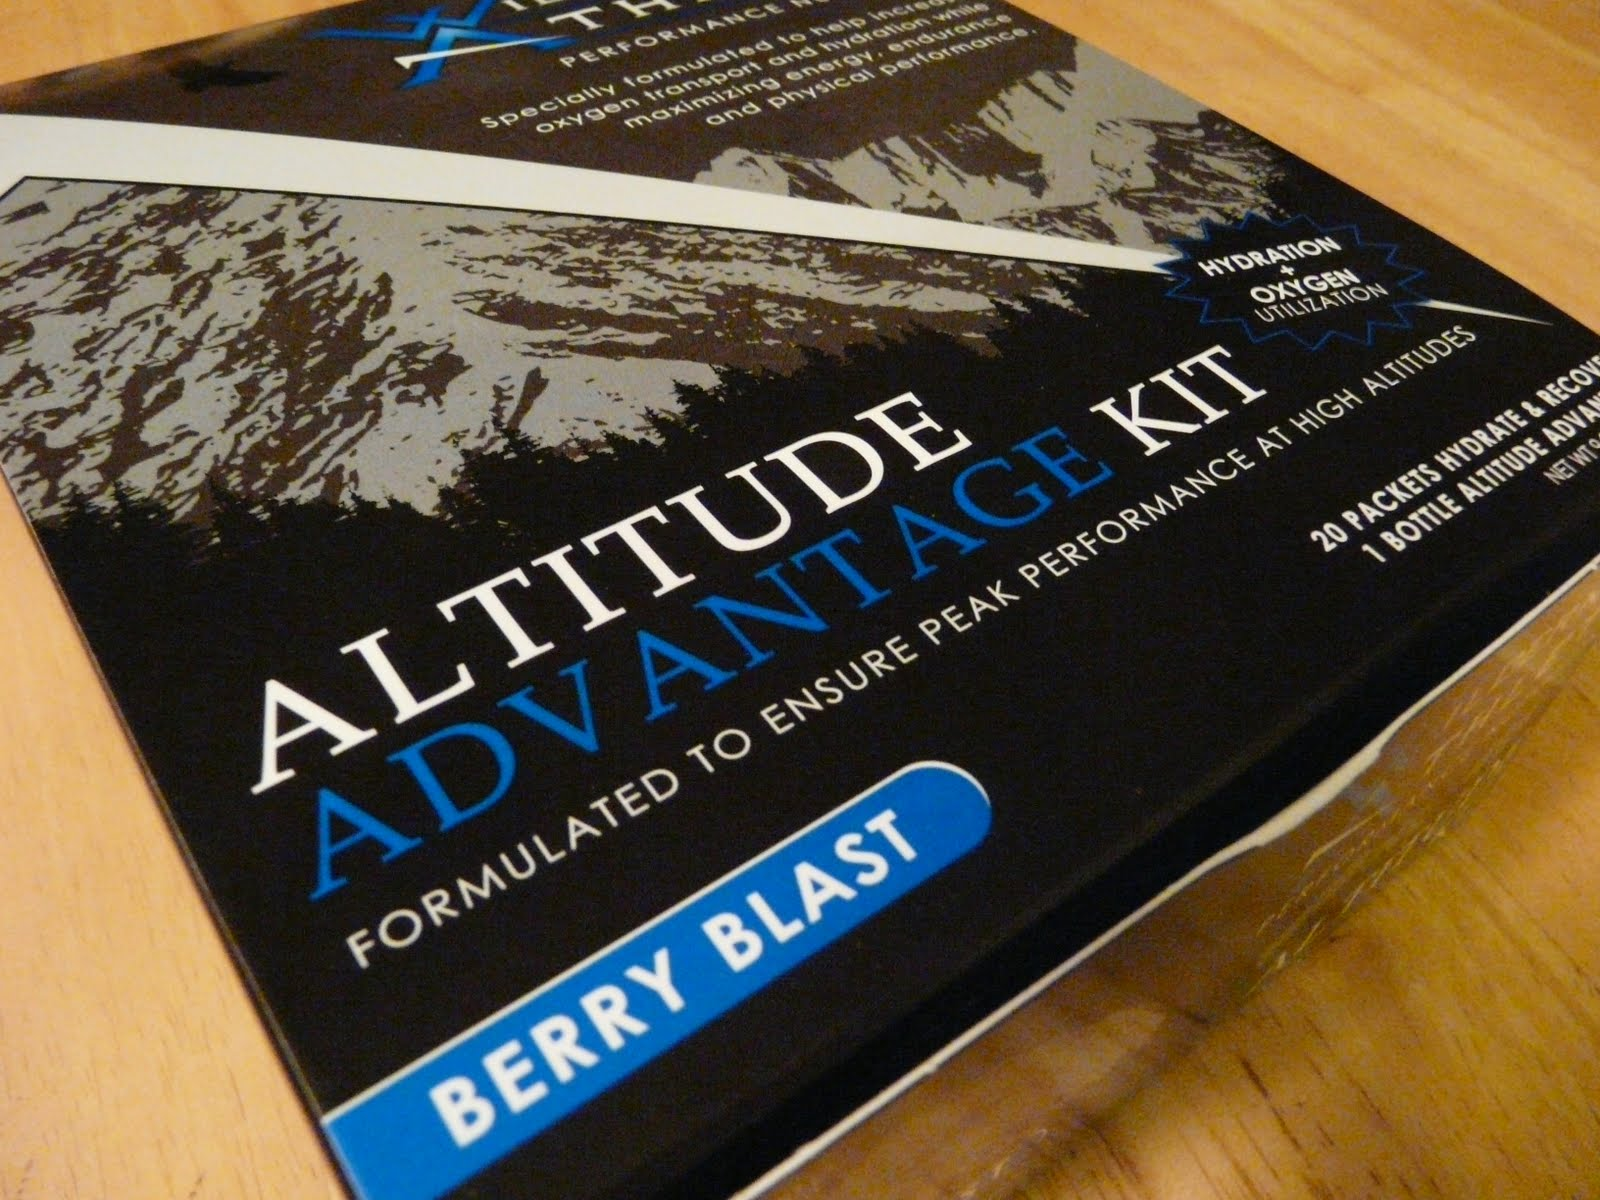 wilderness athlete altitude advantage review team kendrick outdoors in preparation for my colorado archery deer hunt i stopped by the outdoorsmans in phoenix to pick up some wilderness athlete drink mixes both hydrate and